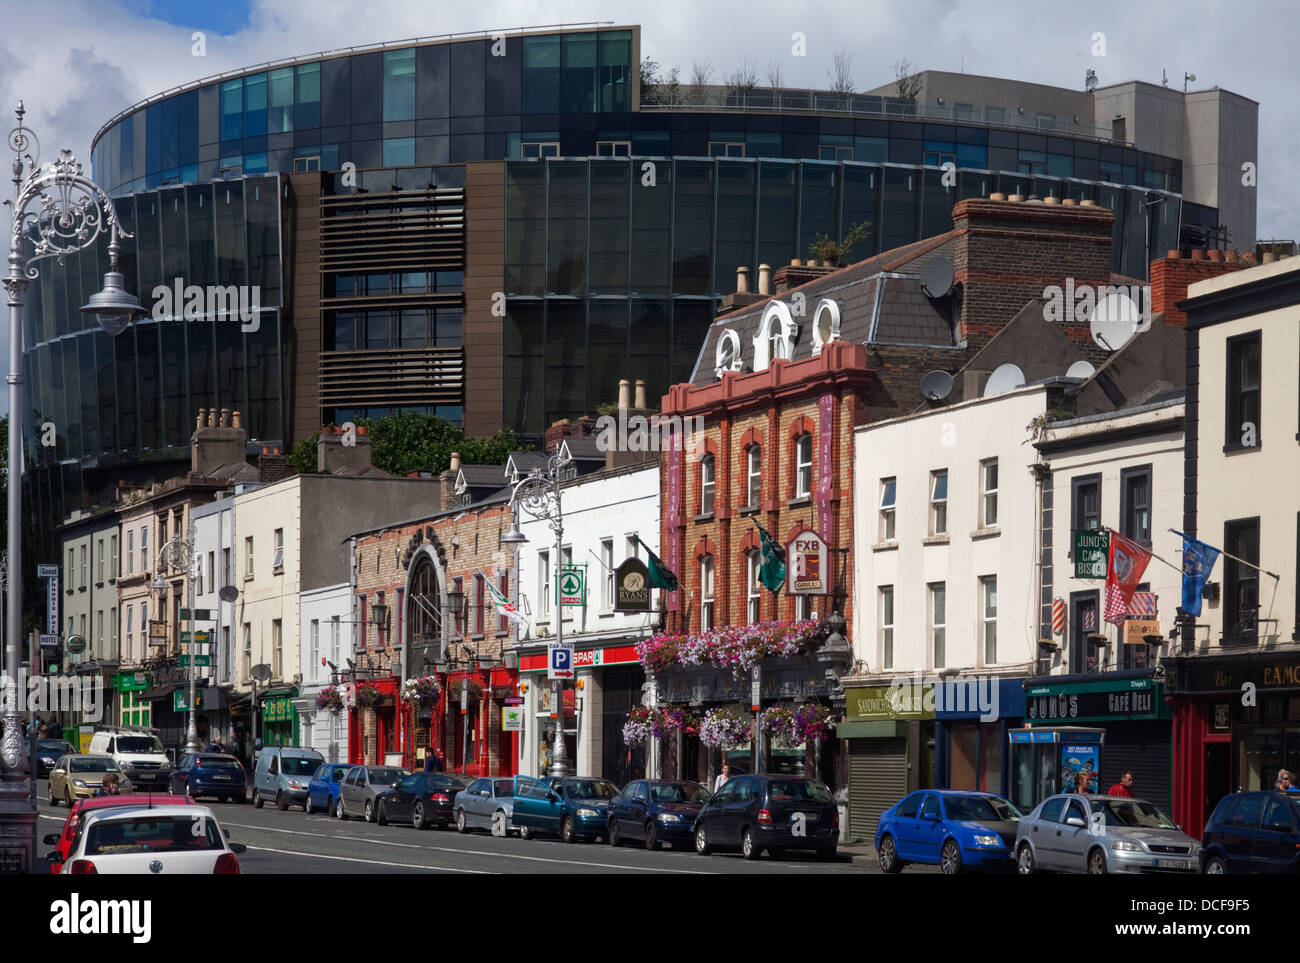 Shops and Pubs on Pargate Street, dwarfed by the new Criminal Courts of Justice, Near the Phoenix Park, Dublin City, - Stock Image